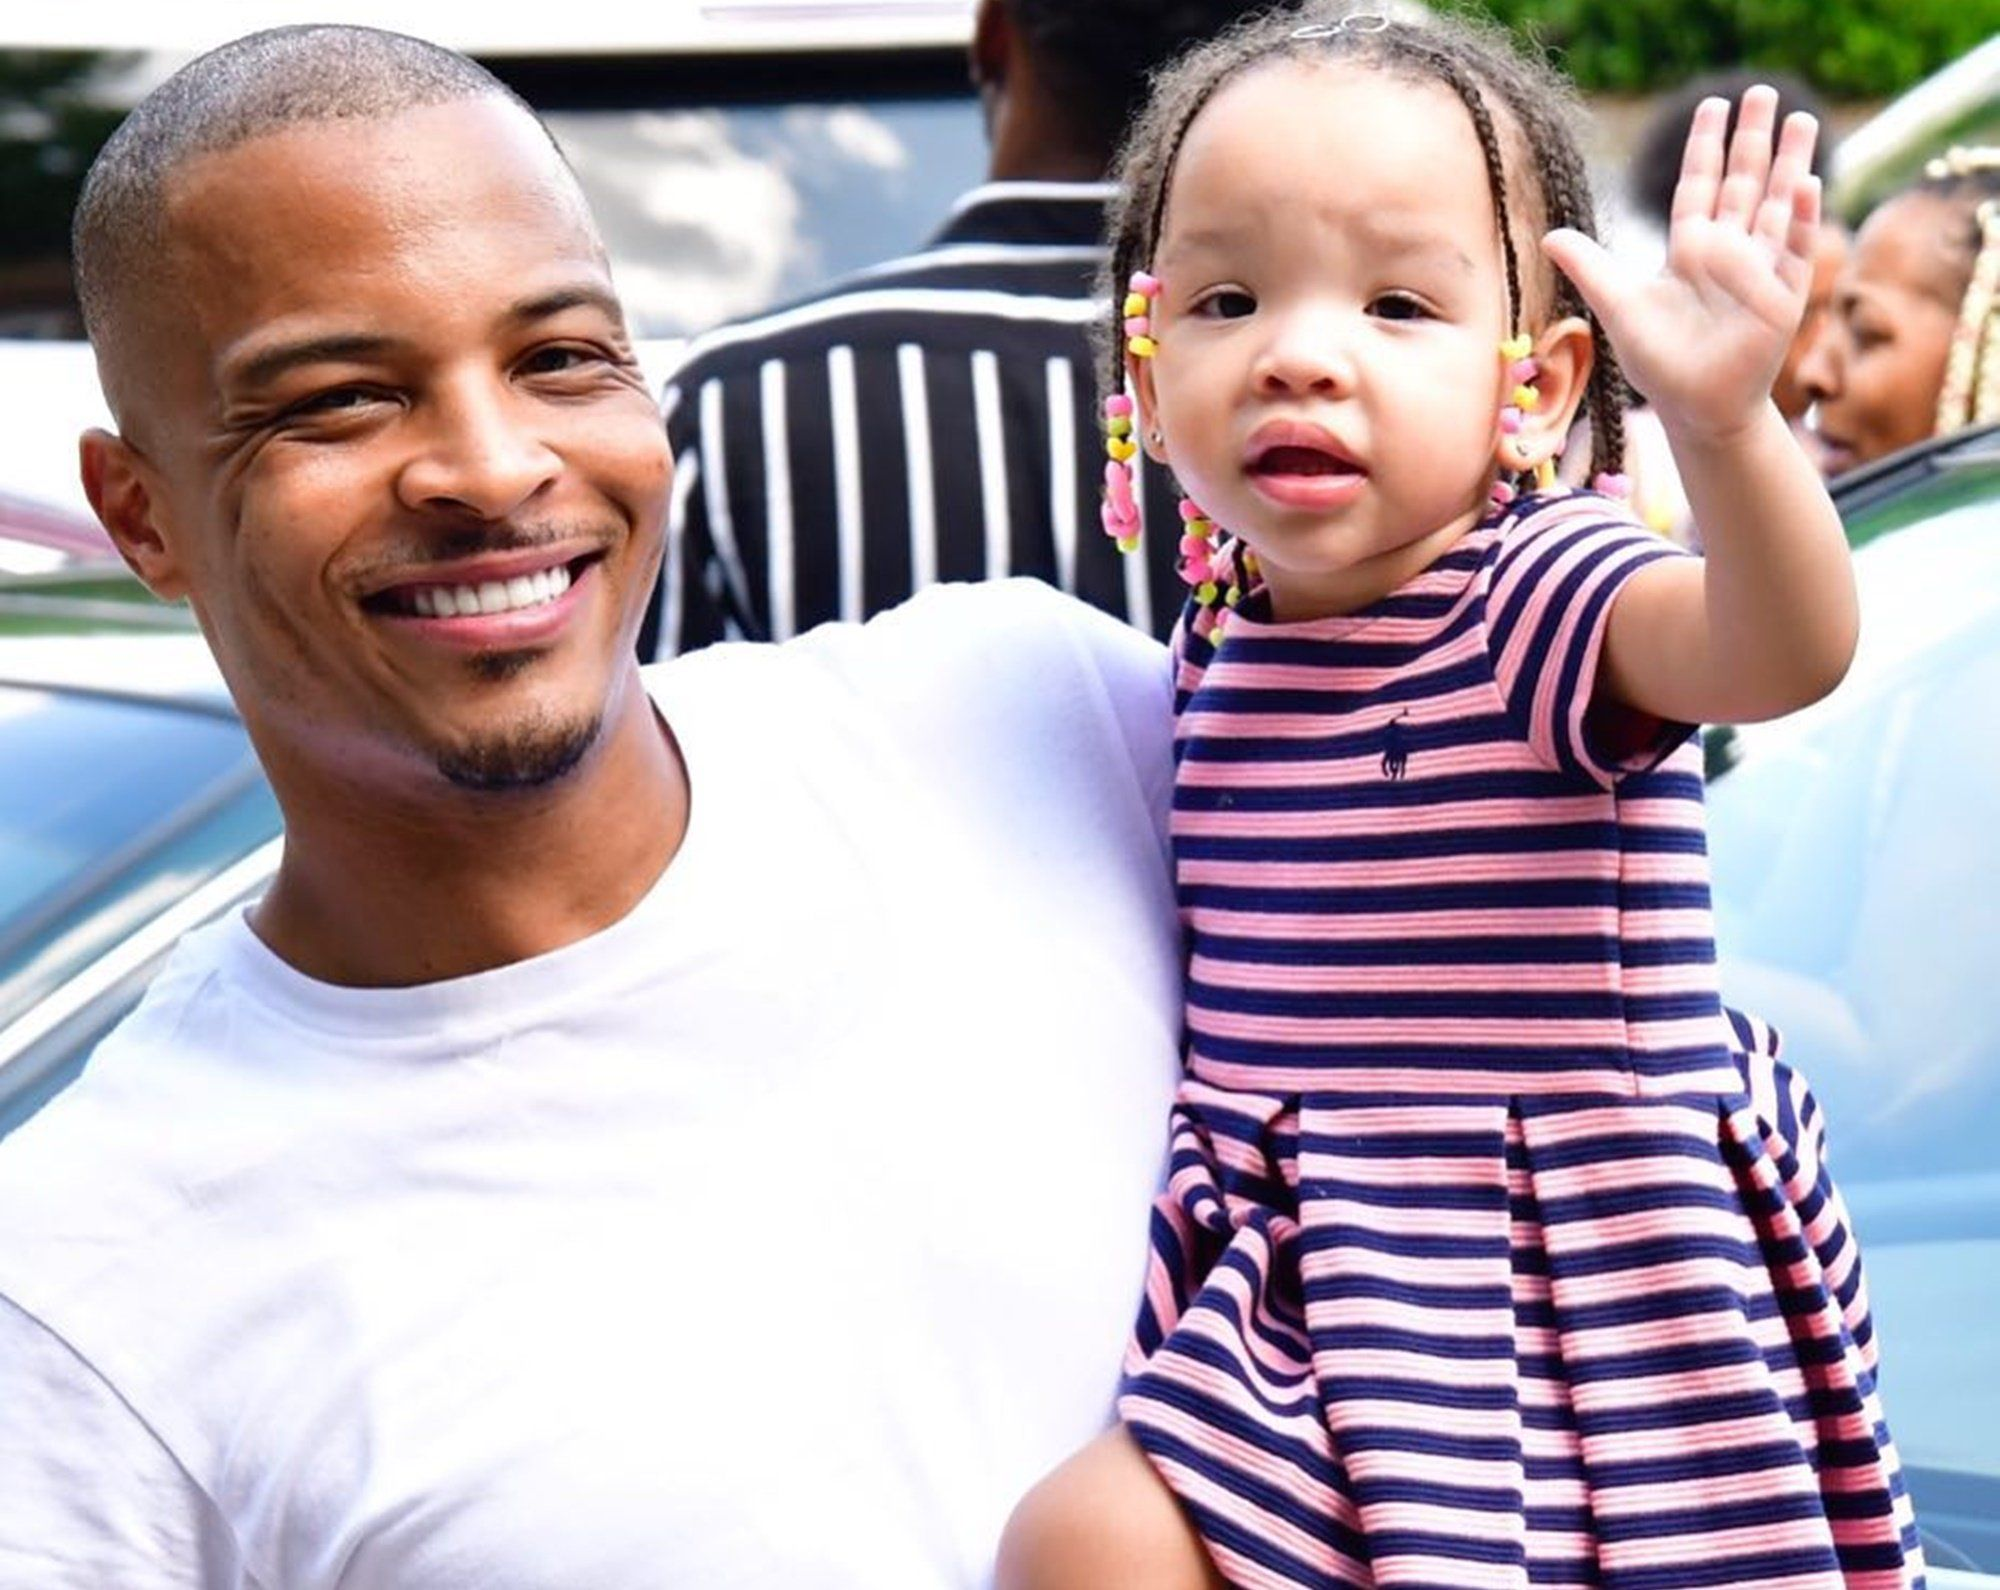 T.I.'s Daughter, Heiress Harris Has A Message From Her Daddy's Part - See The Cute Video